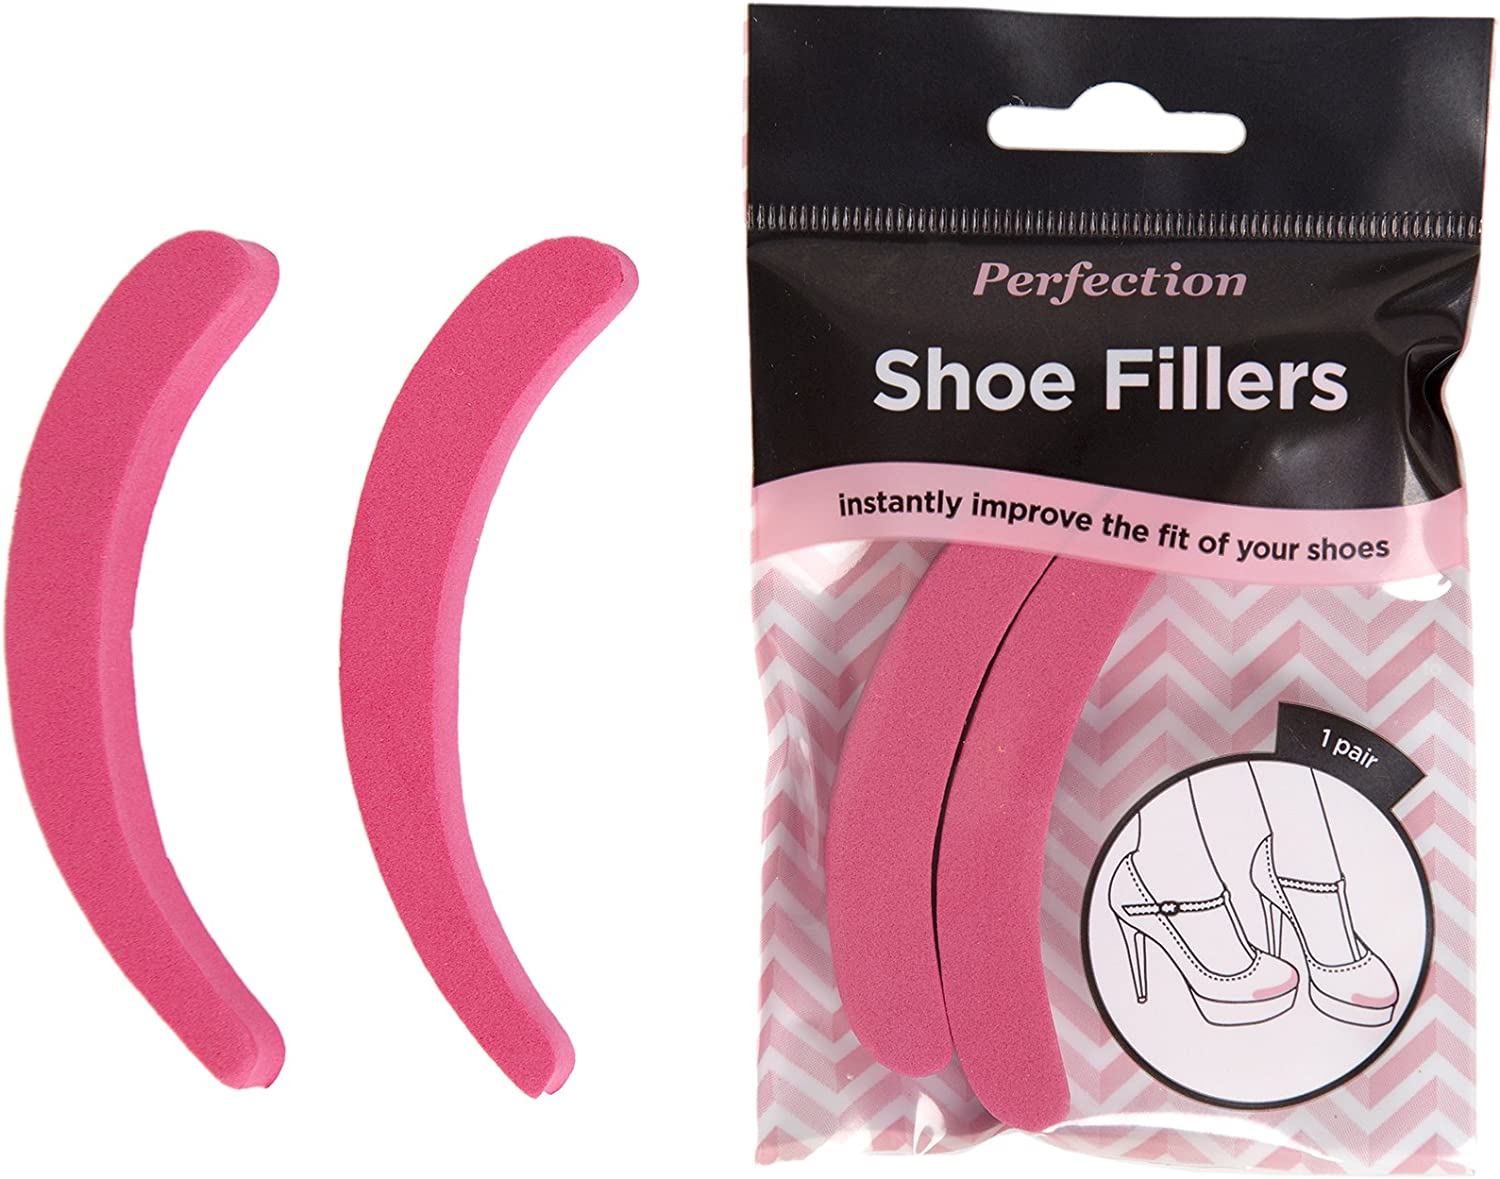 Contoured Inserts To Resize Shoes To Make Big Shoes Fit Perfection Shoe Fillers